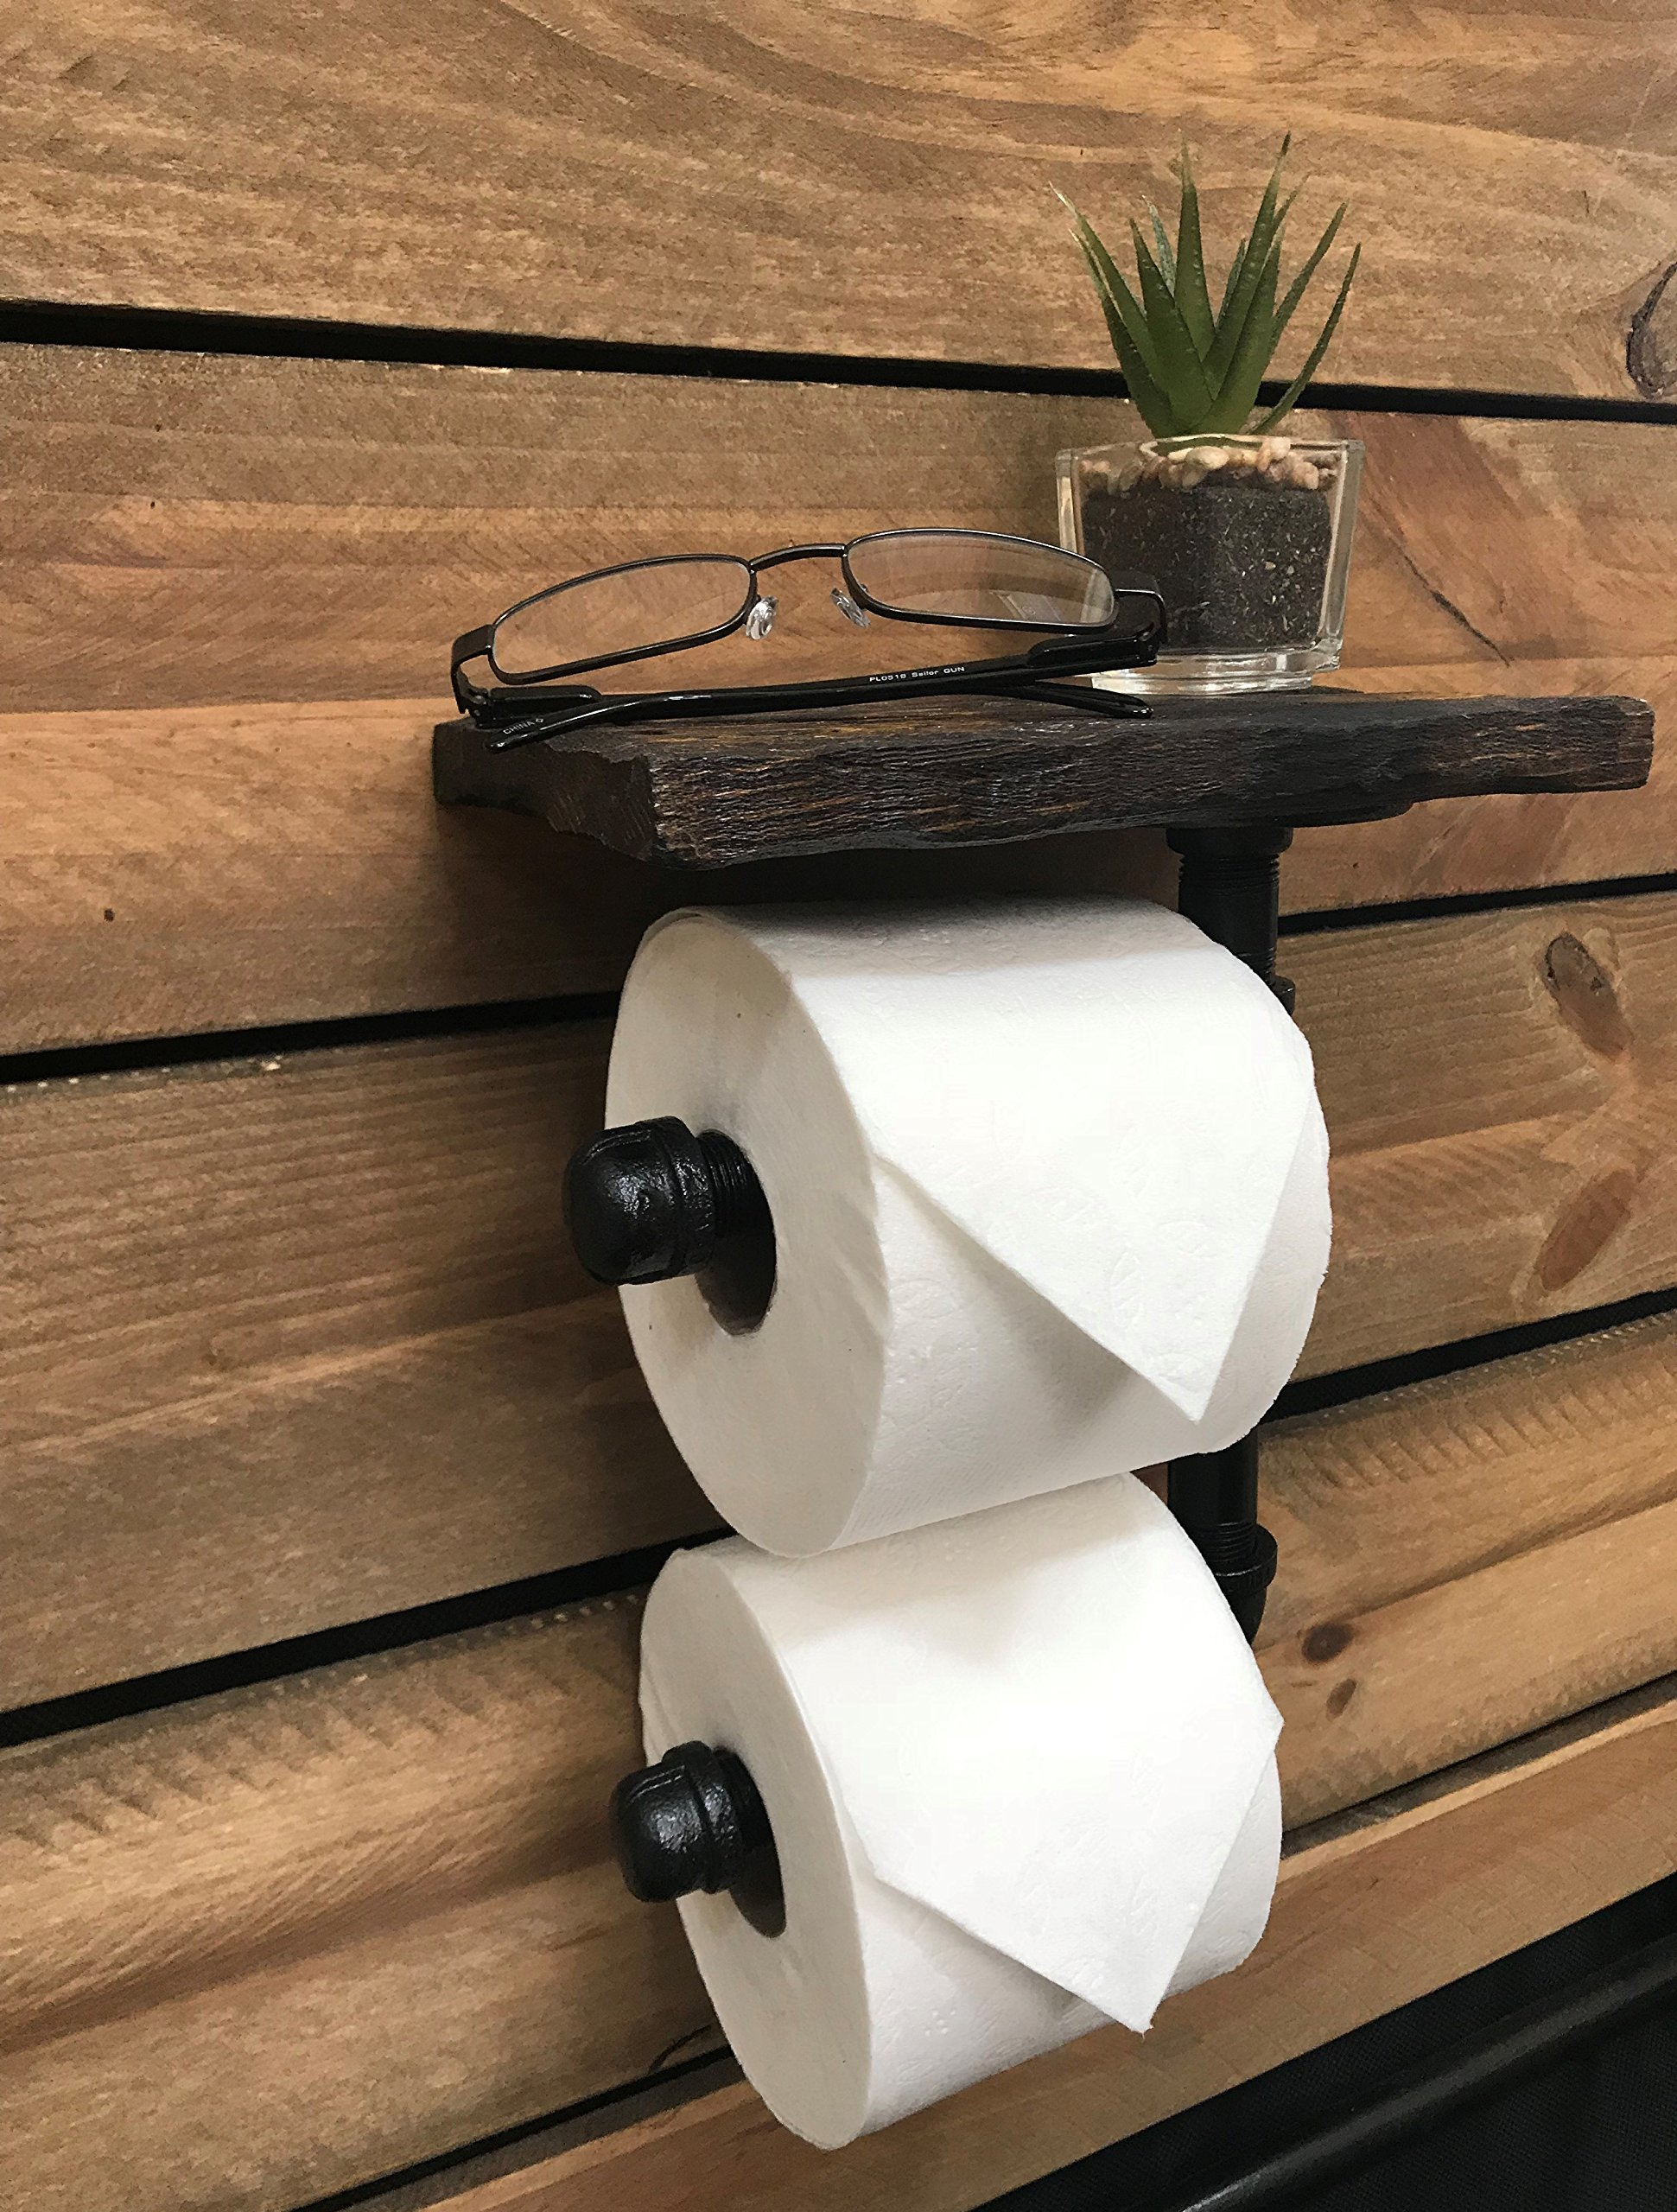 Toilet Paper Holder Shelf for Mobile Phone Storage in Bathroom with 5 Color Options (Dark Walnut) by Piping Hot Art Works (Image #2)